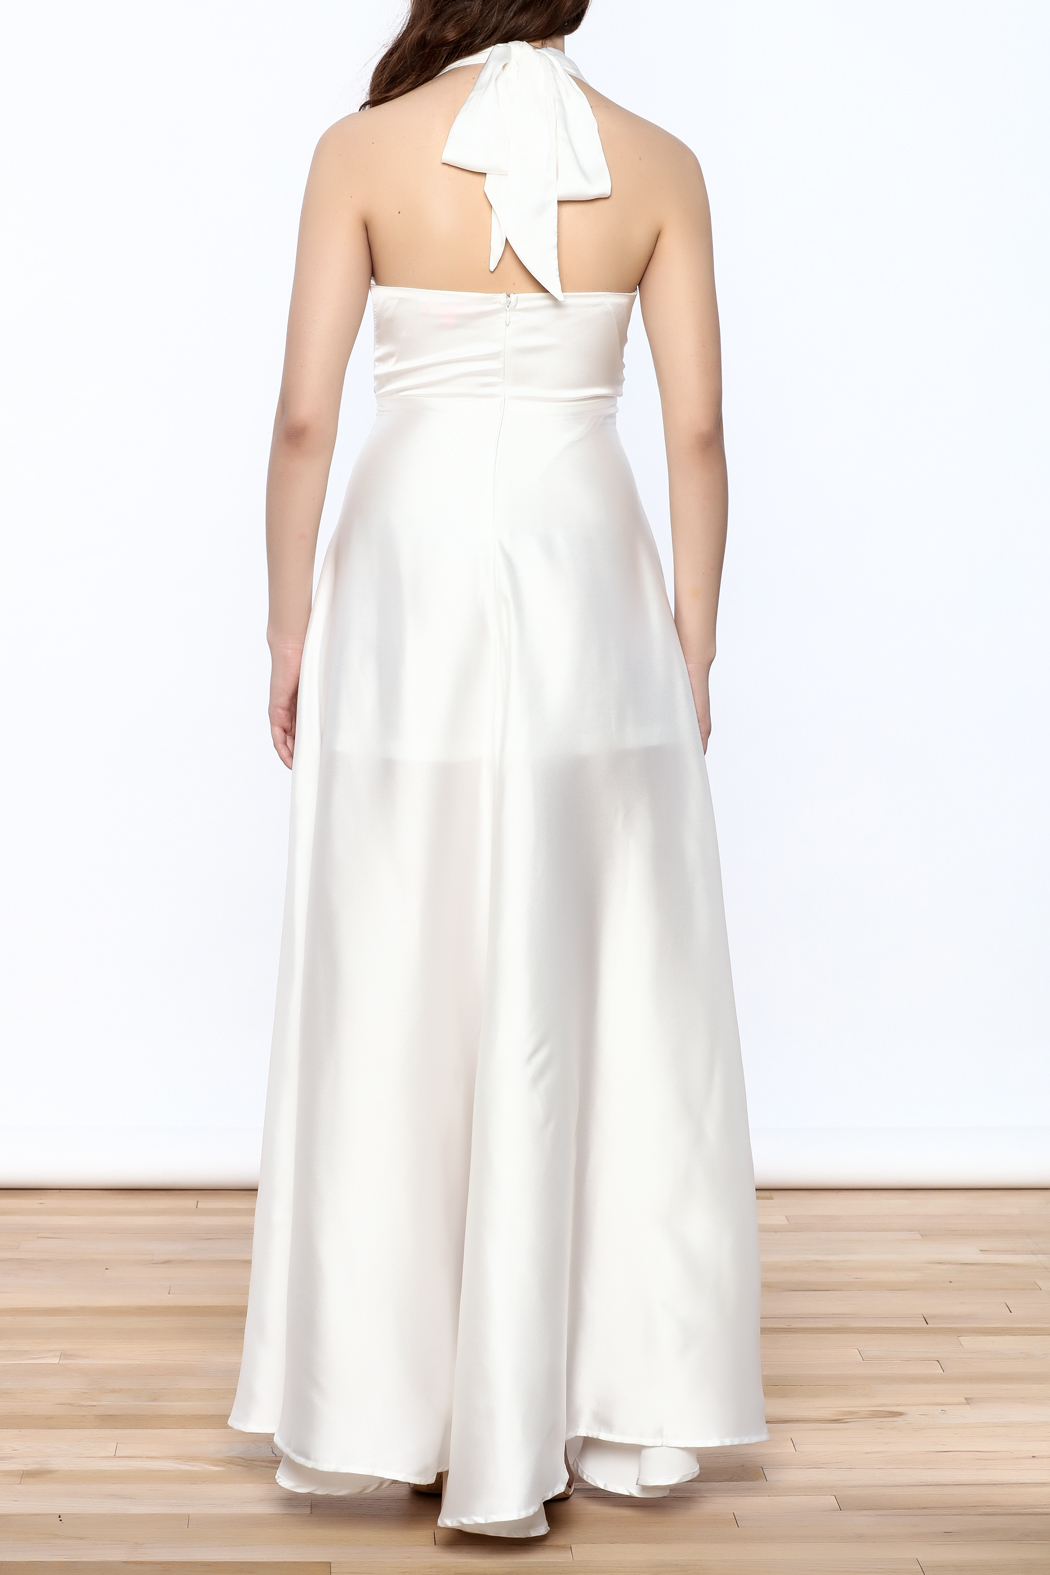 Xtaren White Halter Dress - Back Cropped Image